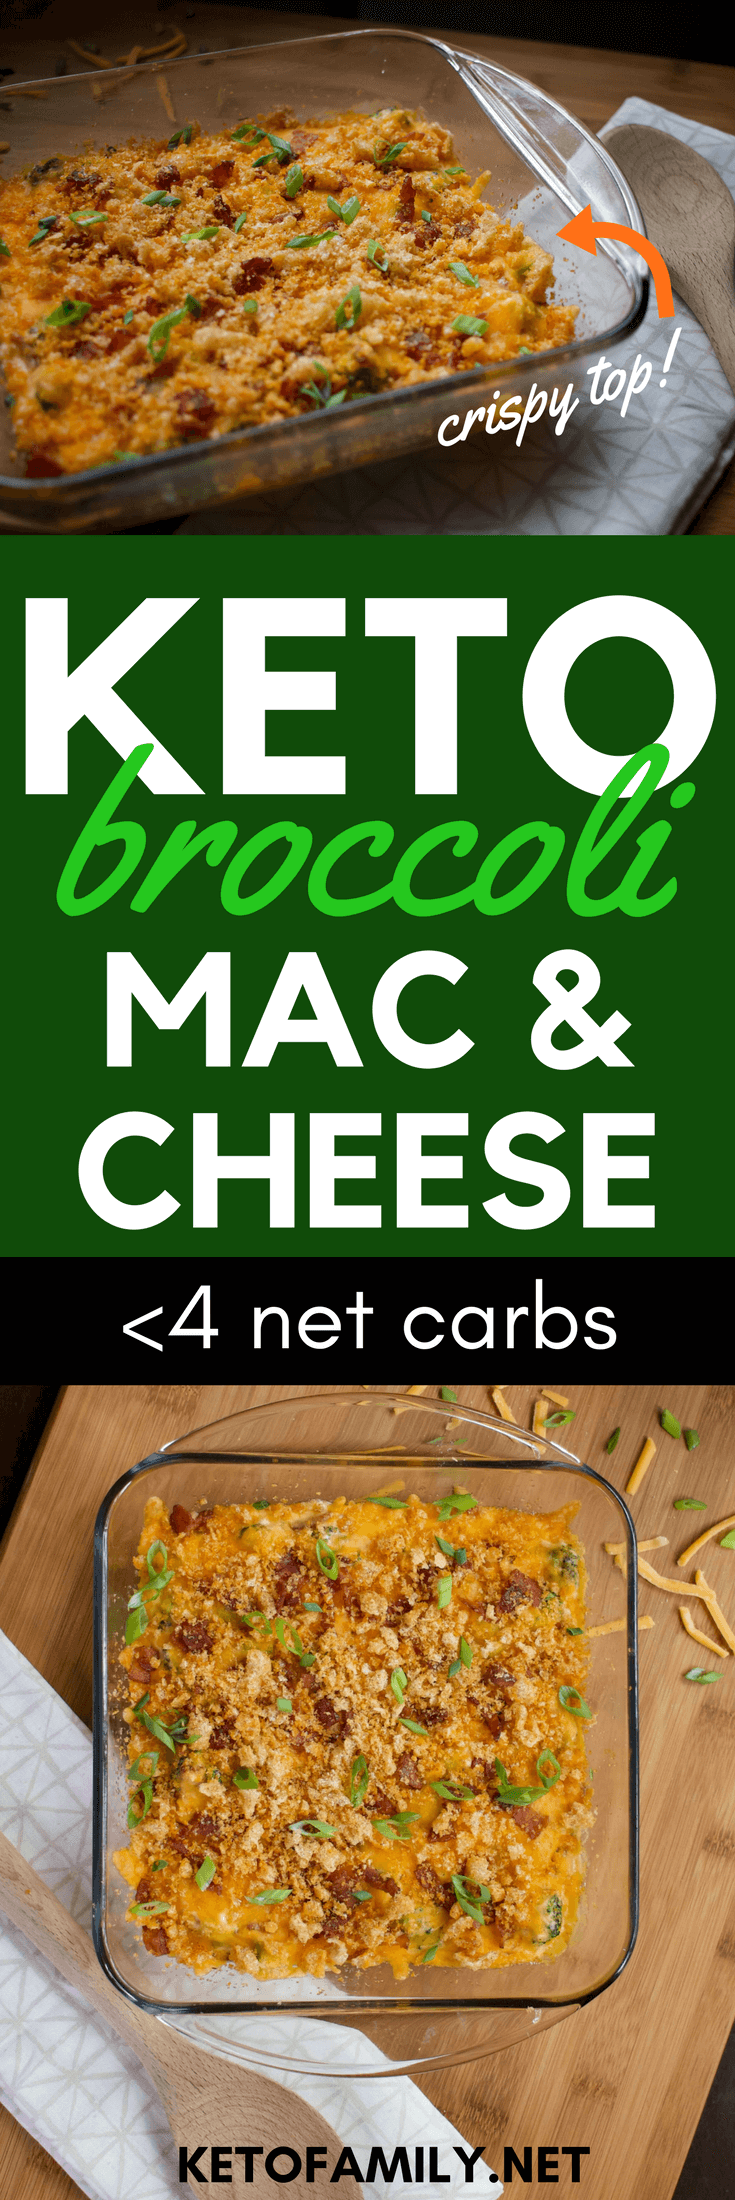 This Keto Broccoli Mac and Cheese With Bacon includes all the good parts of normal mac and cheese—including a silky sauce and a crispy top—without the carb overload!